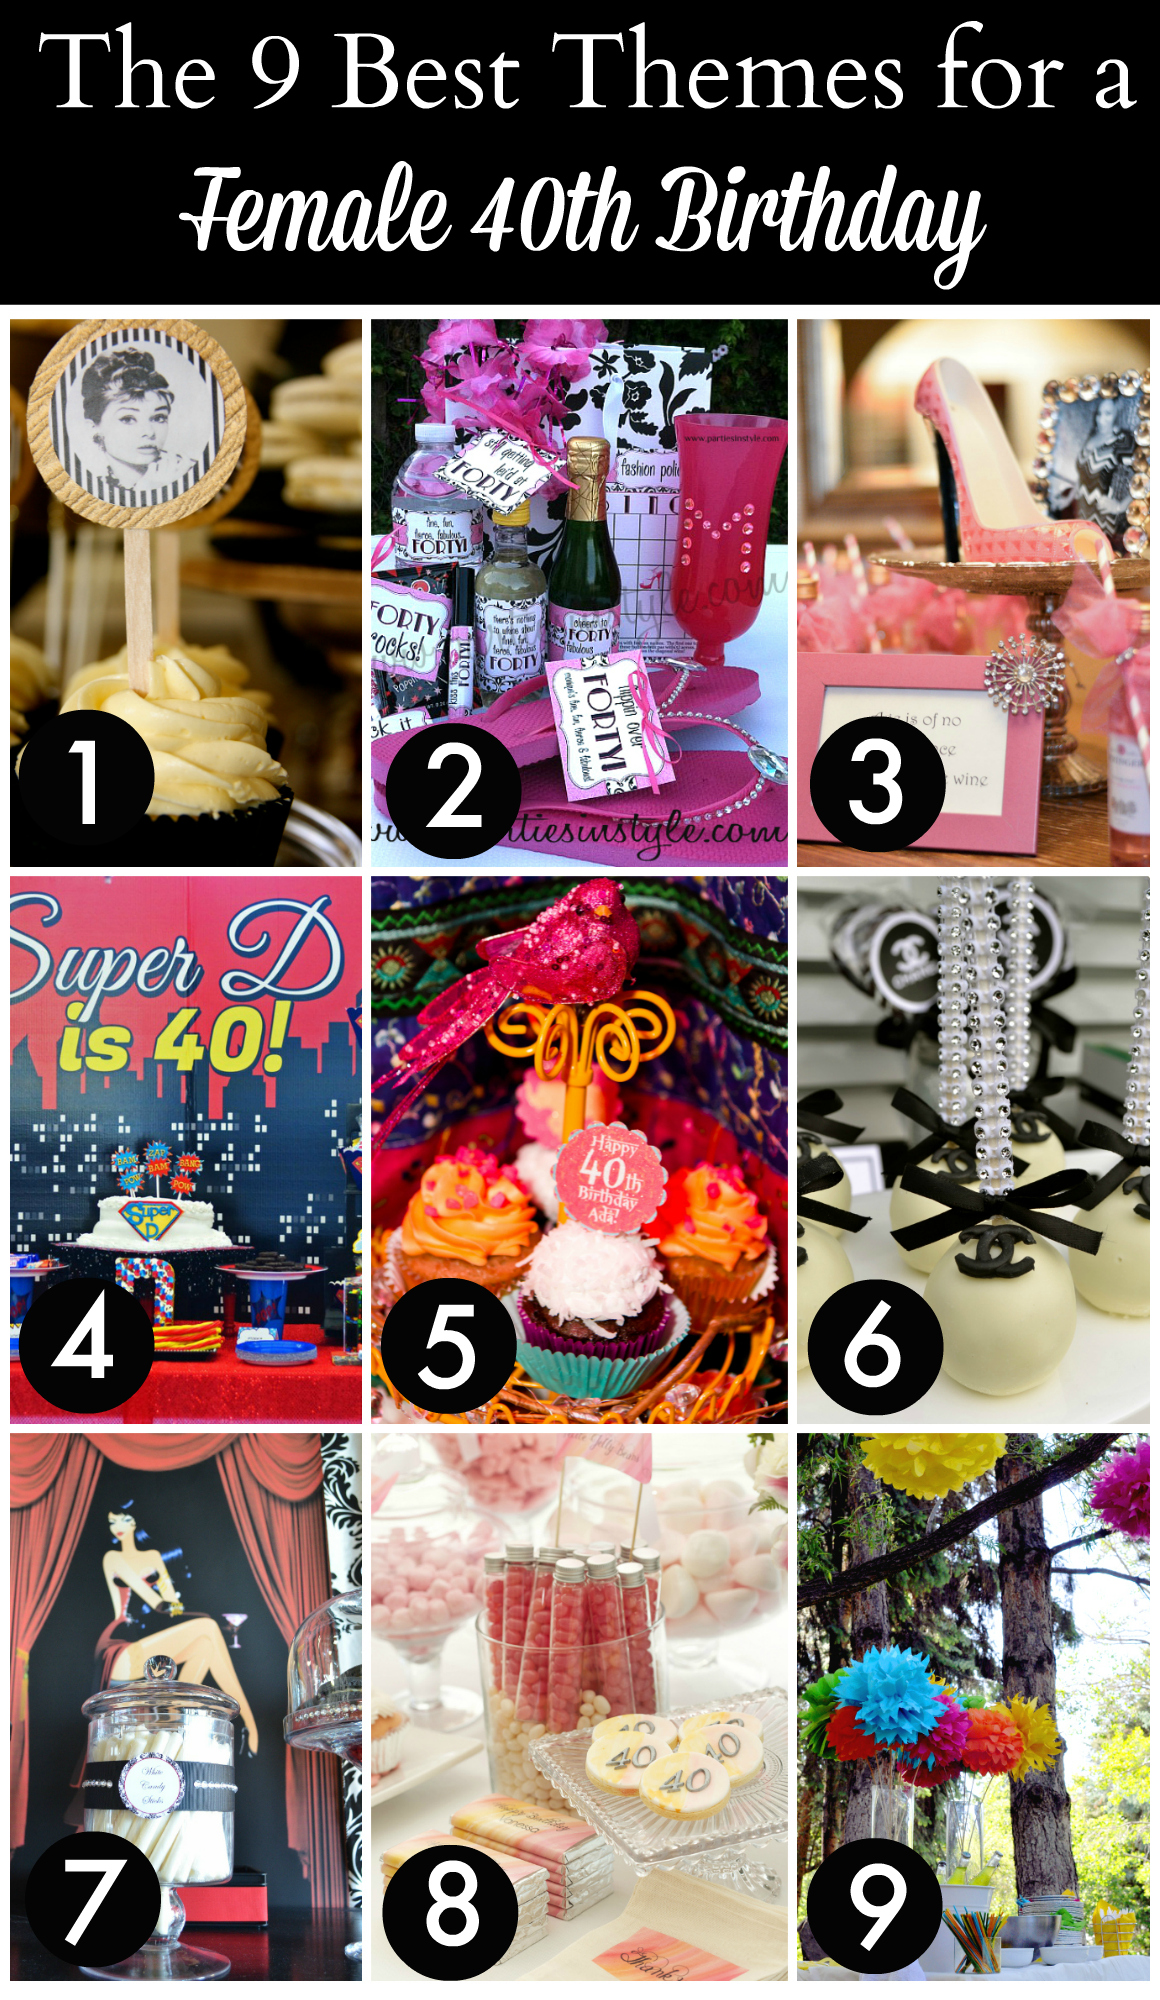 birthday party ideas and themes ; 40th-Themes